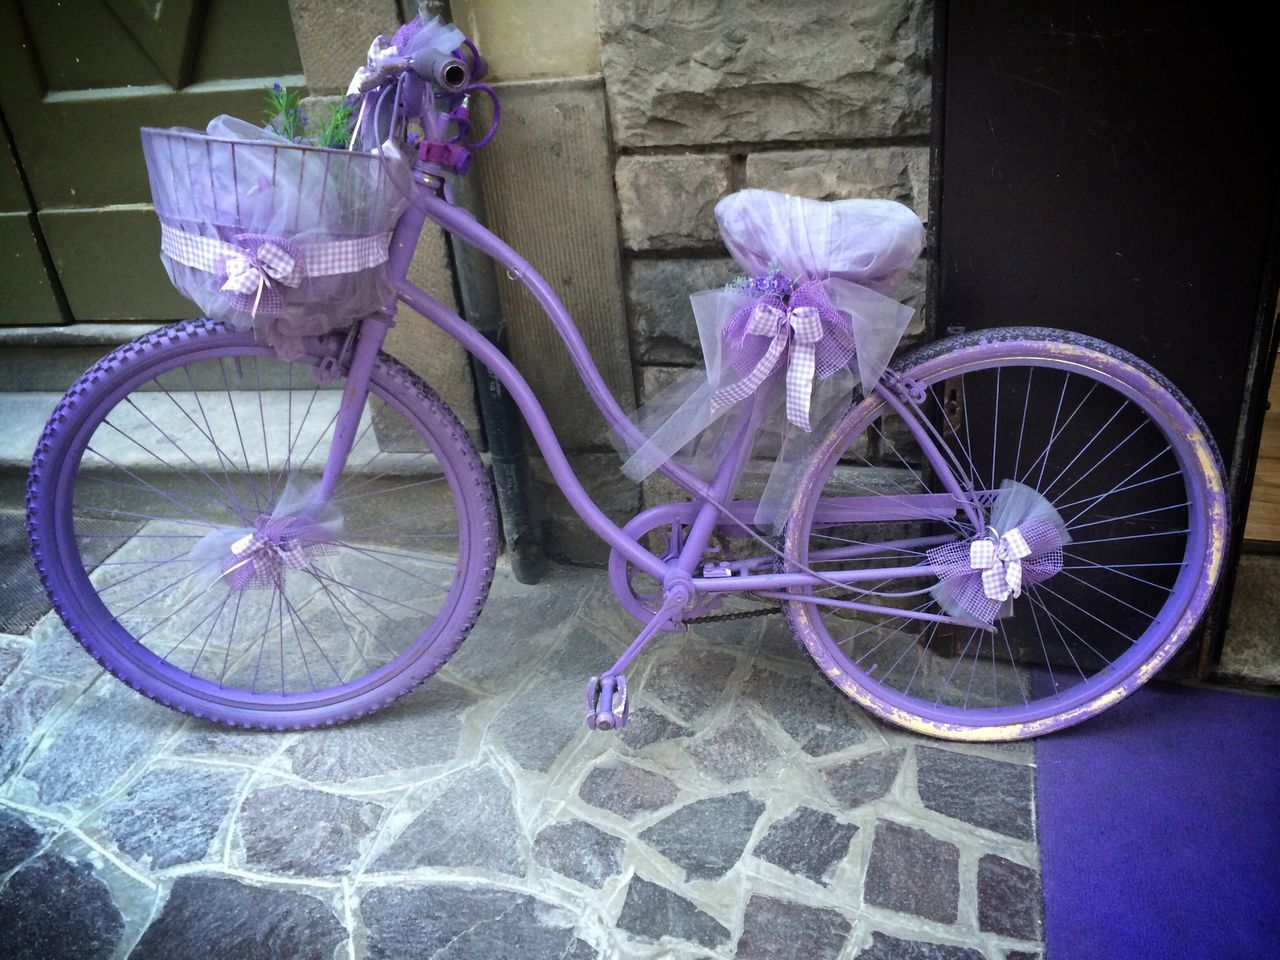 bicycle, transportation, purple, land vehicle, stationary, flower, no people, outdoors, day